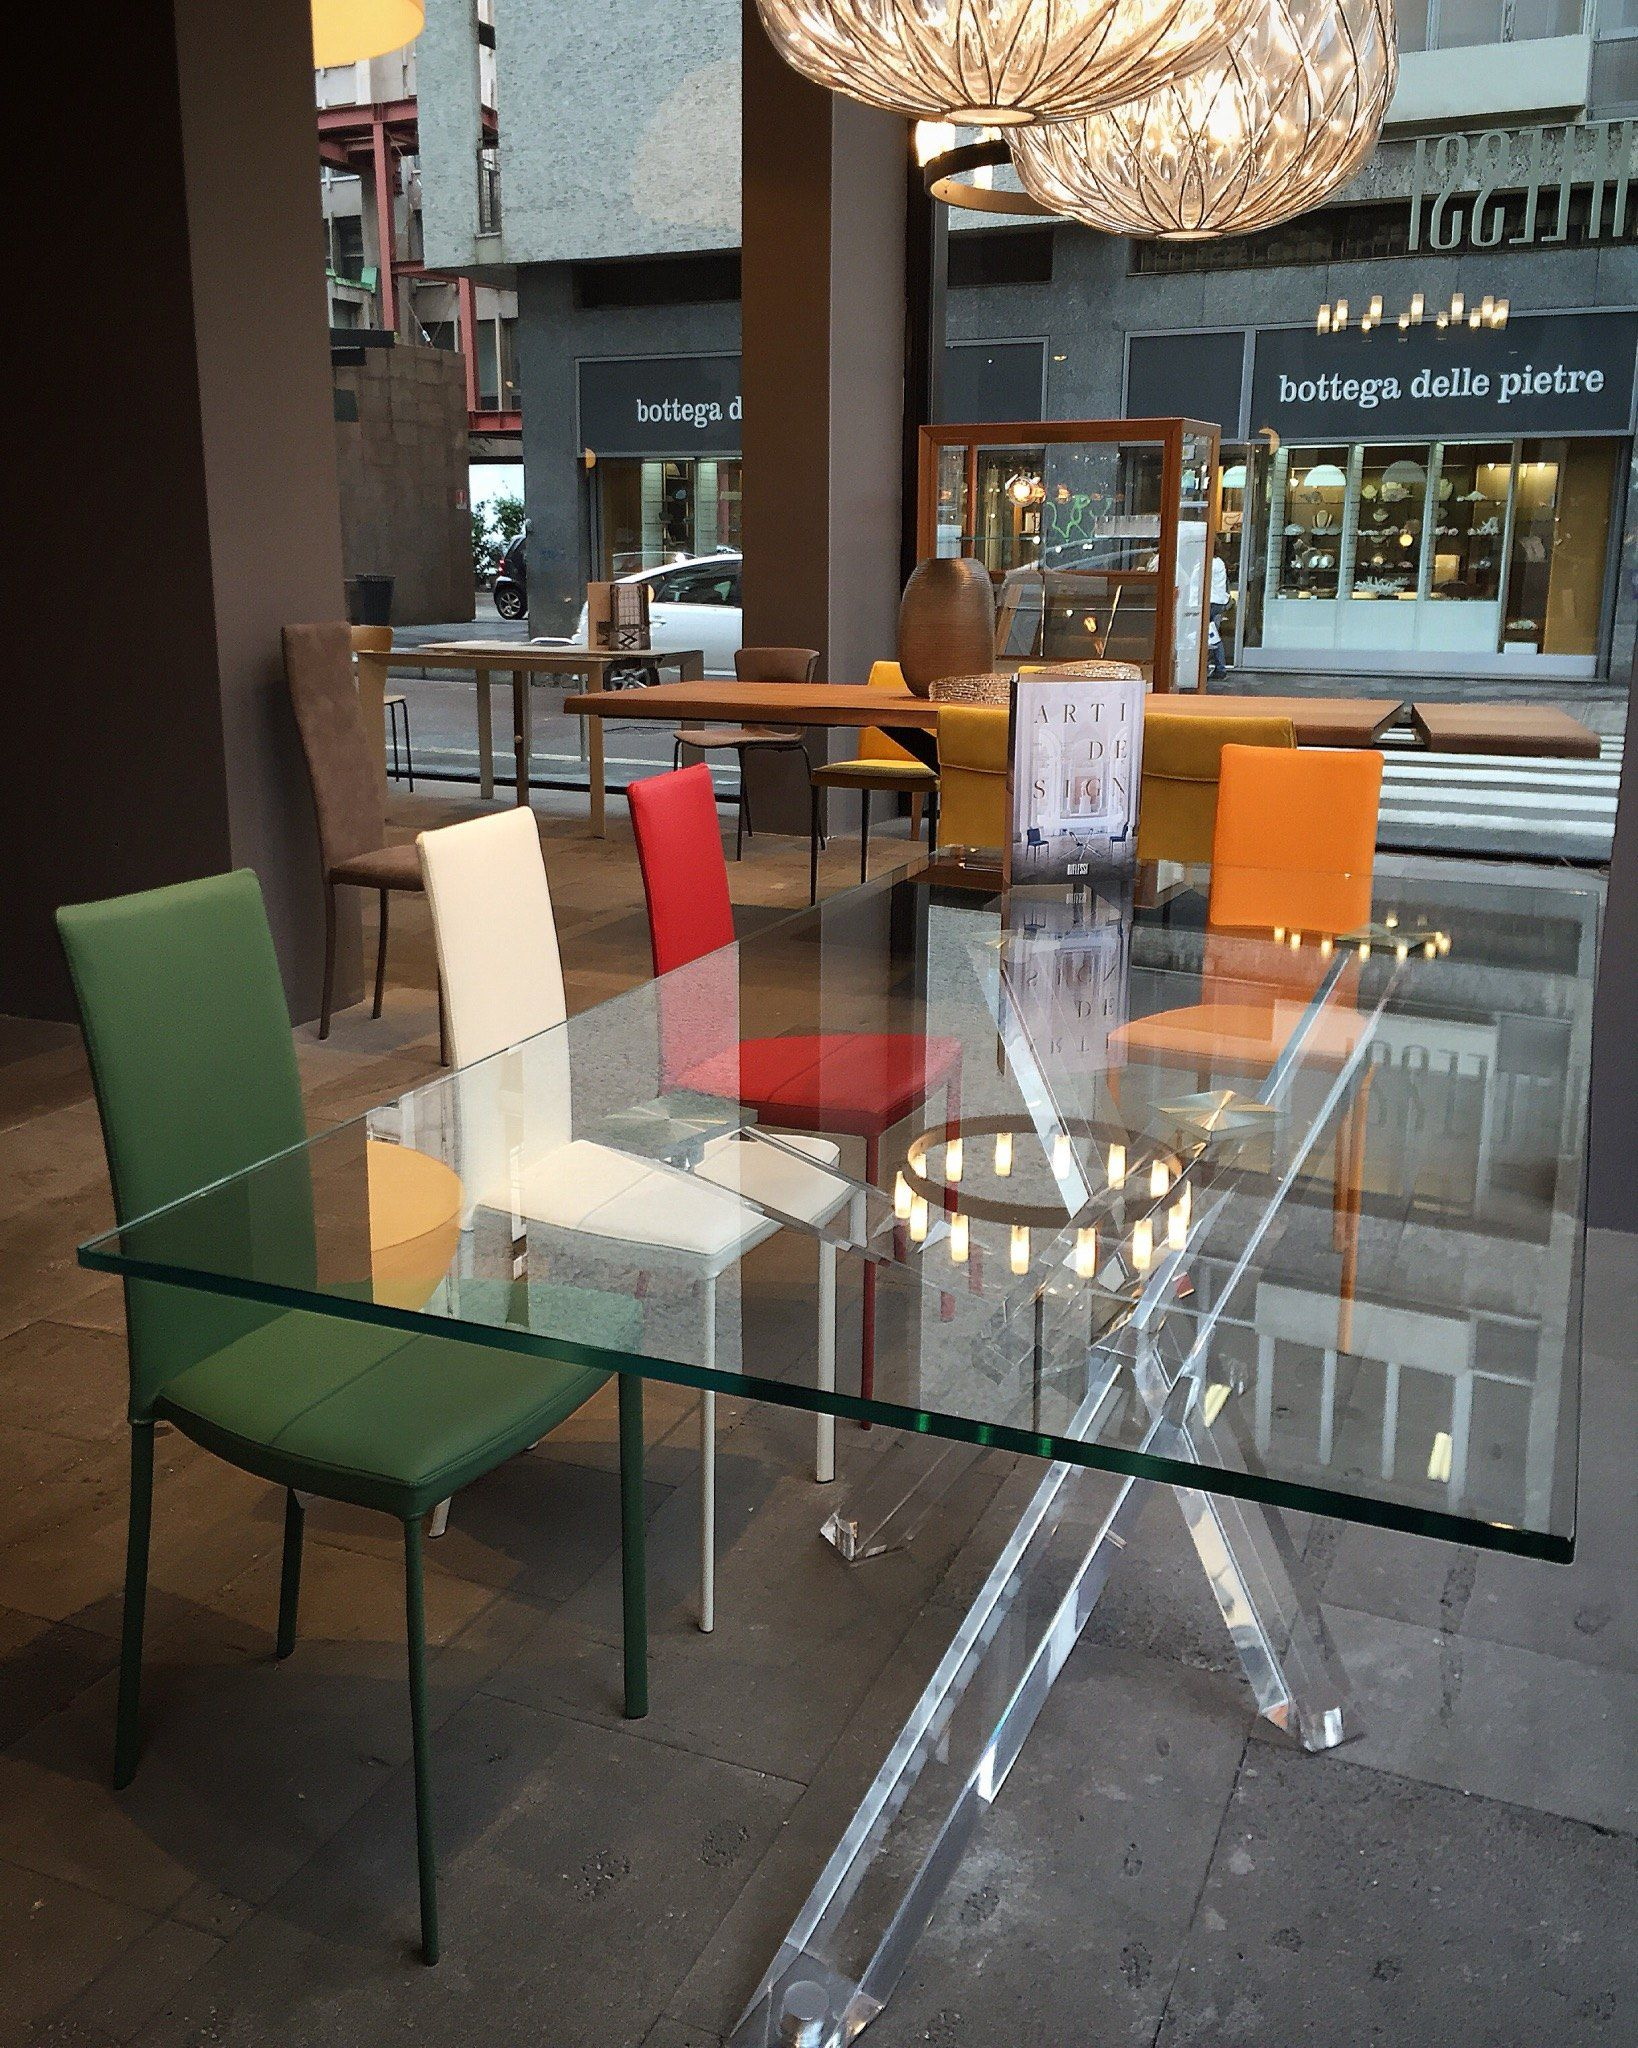 Table Shangai limited edition 100x200 transparent methacrylate base, top in tempered extraclearglass; Chai Slim with steel frame upholstered in eco-leather